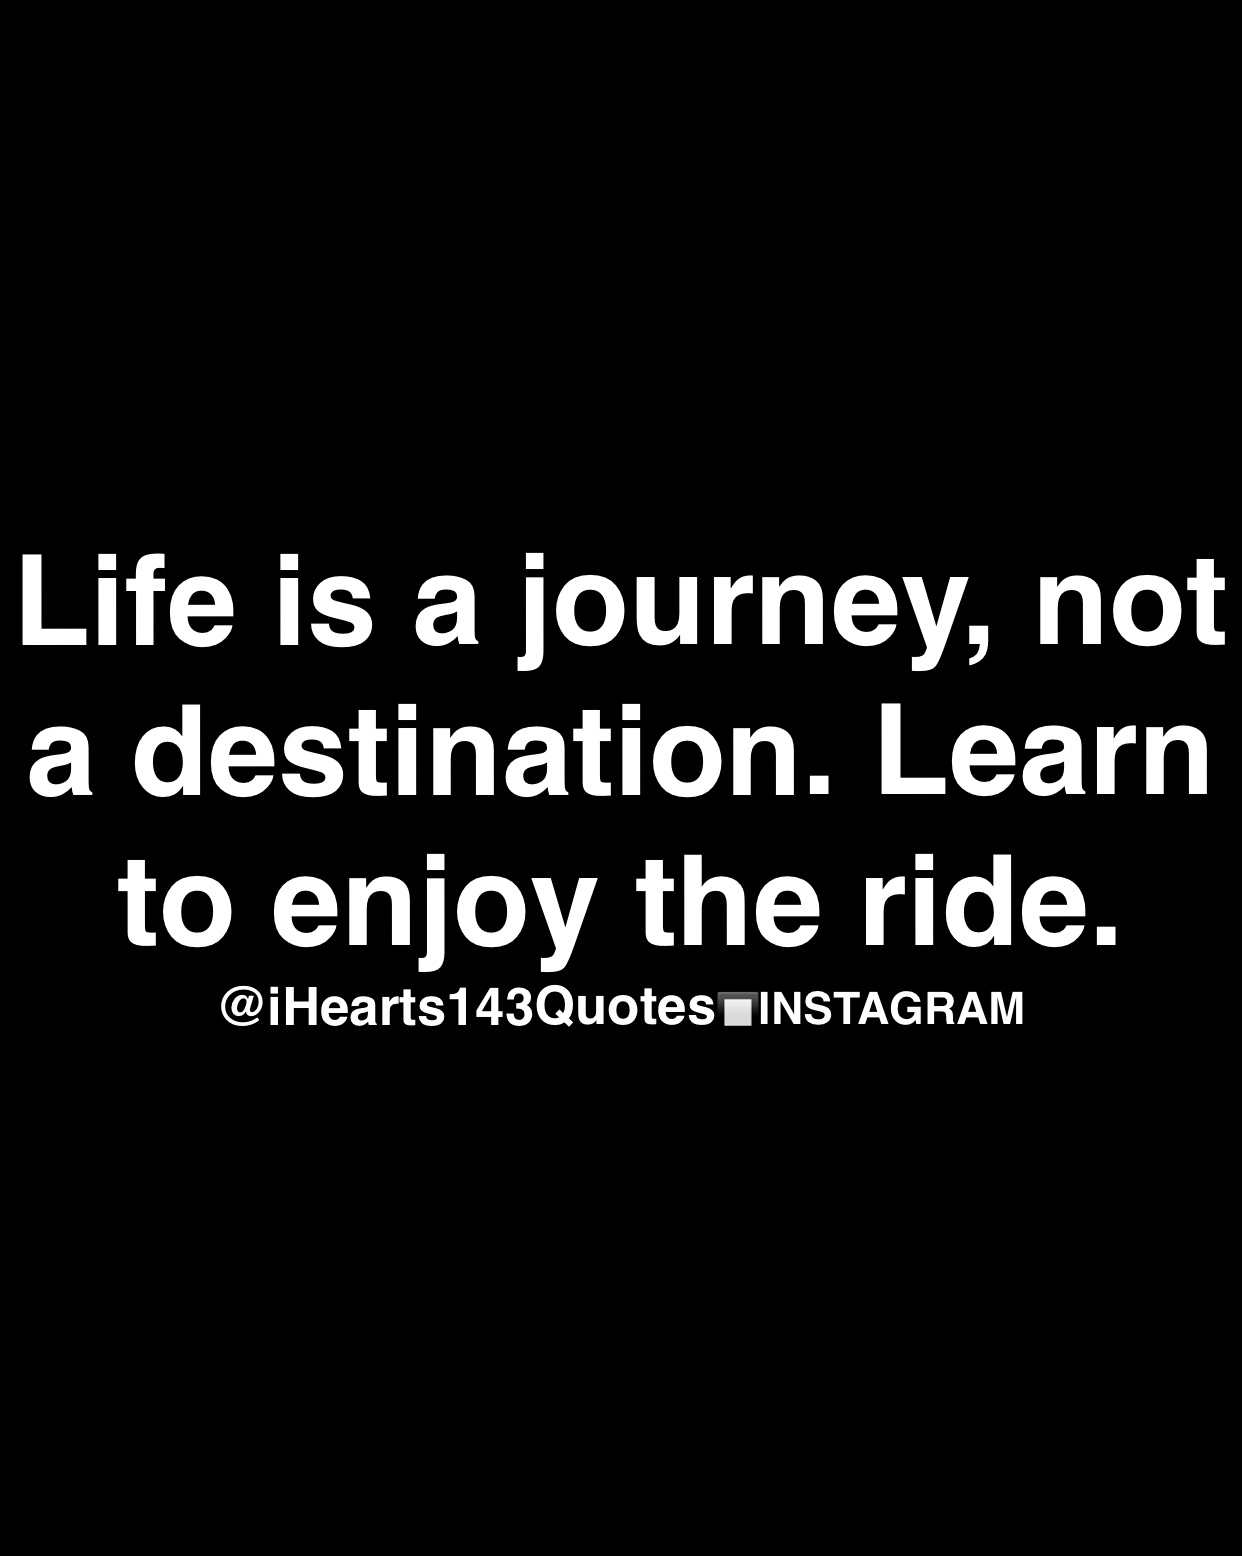 Inspirational Quotes About Lifes Journey Daily Motivational Quotes  Ihearts143Quotes